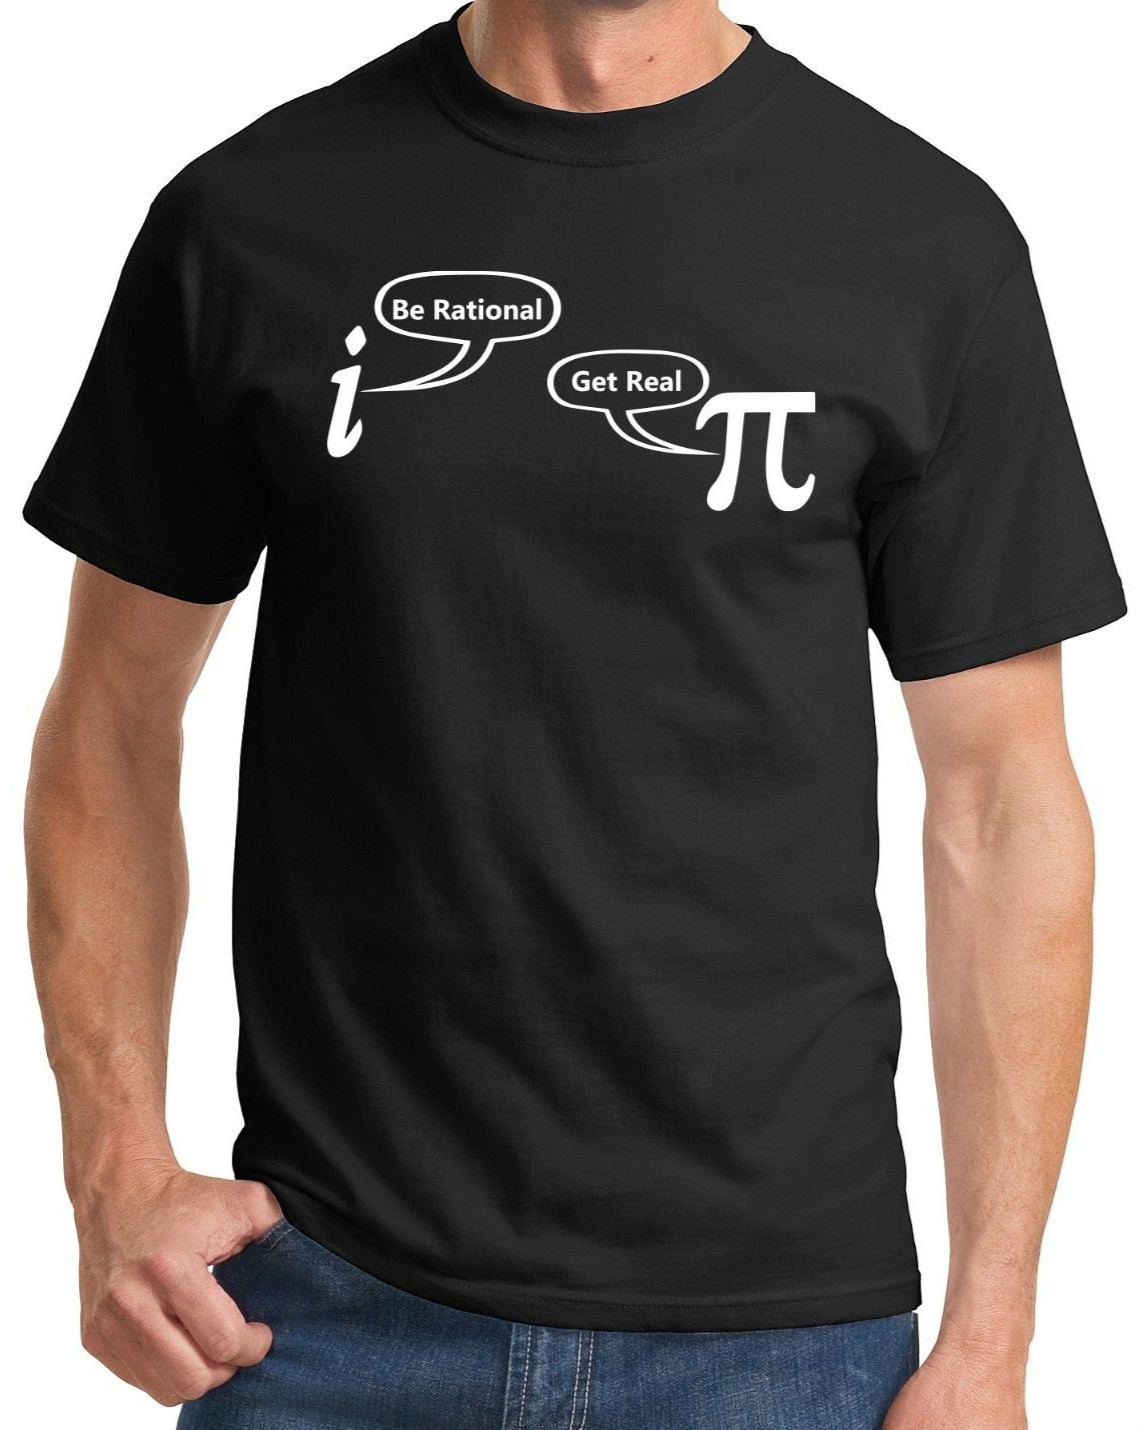 Be Rational Get Real Funny T Shirt Math Geek Nerd Humor Tee Holiday Gift Shirt High Quality top tee Summer O-Neck Tops